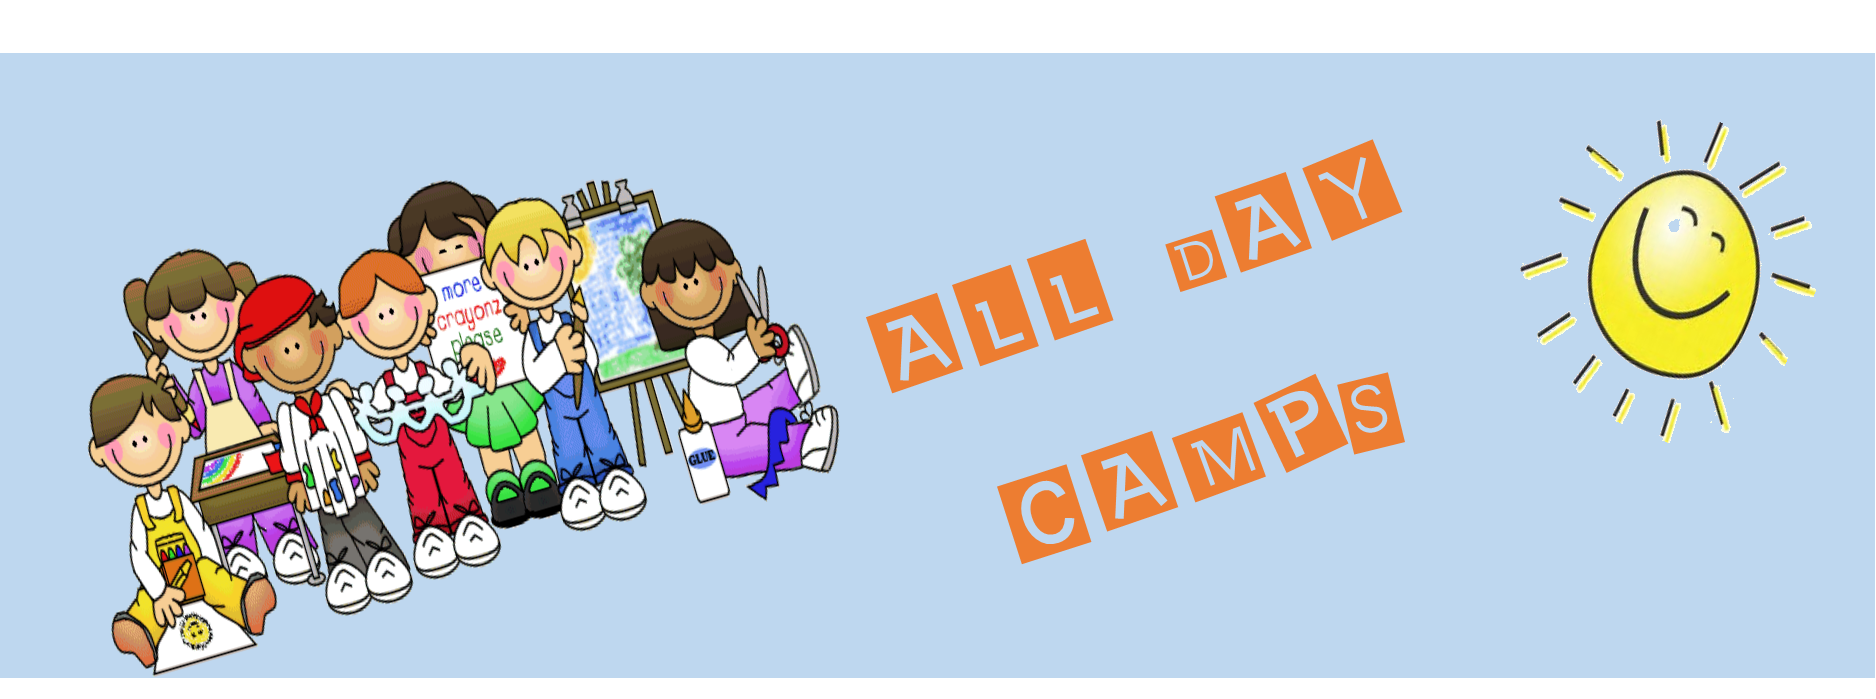 all day camp page header